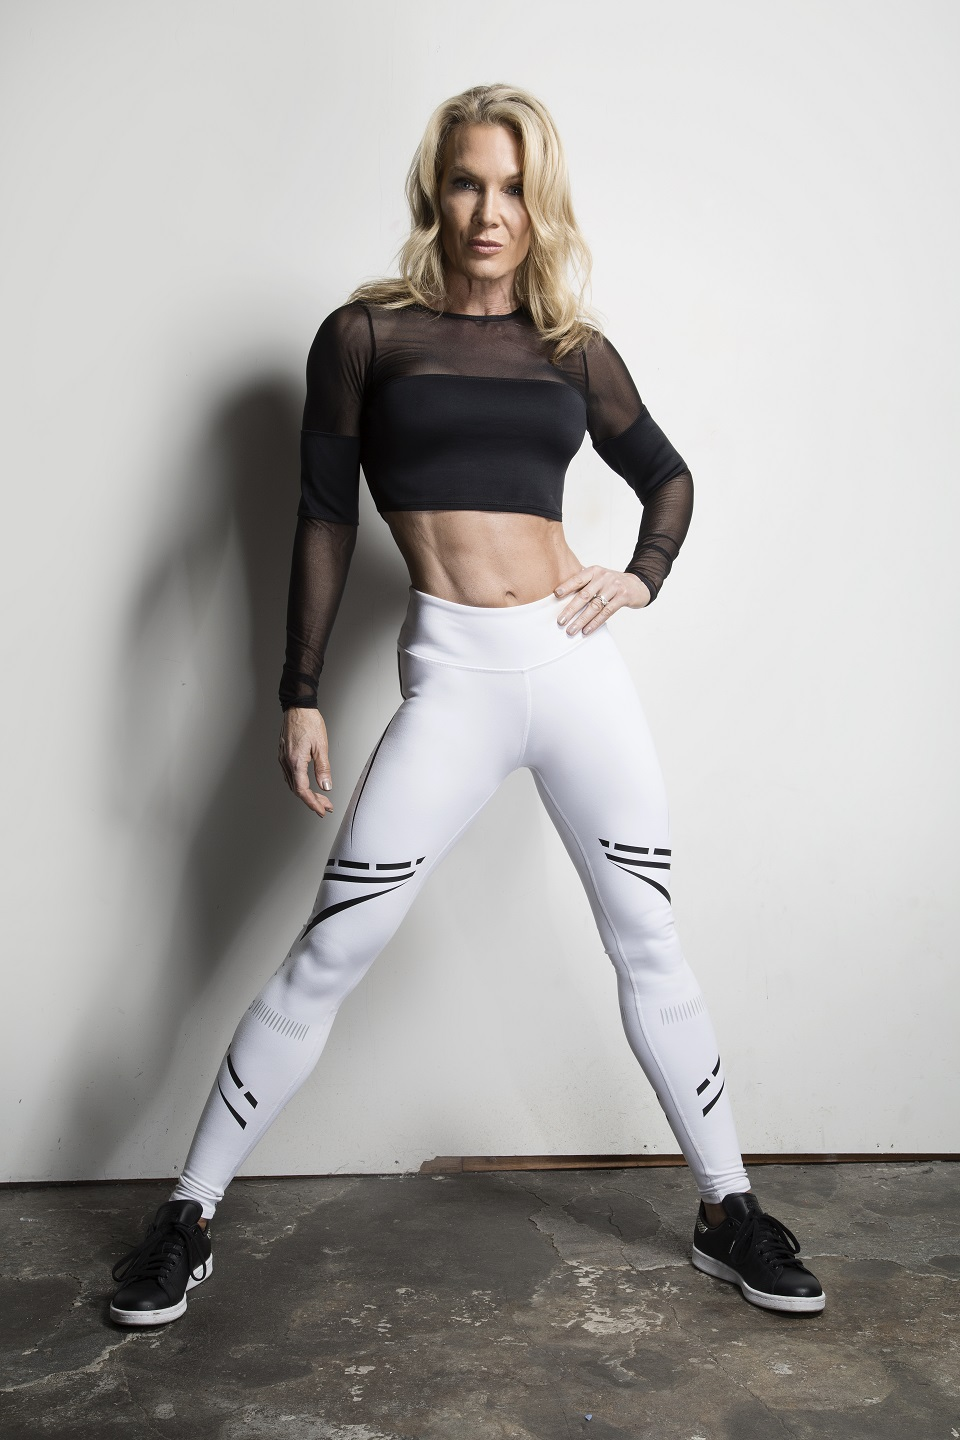 Bobbi Parker HallPersonal Trainer - I've been helping women for over 20 years get in the best shape of their lives and stay that way. My science based programs are designed and infused with a mind, body, spirit approach for the modern woman that sees herself staying strong, sexy and active well into her later years.Whatever age or fitness level you are at today, you can start NOW to build your best beautiful version of you!